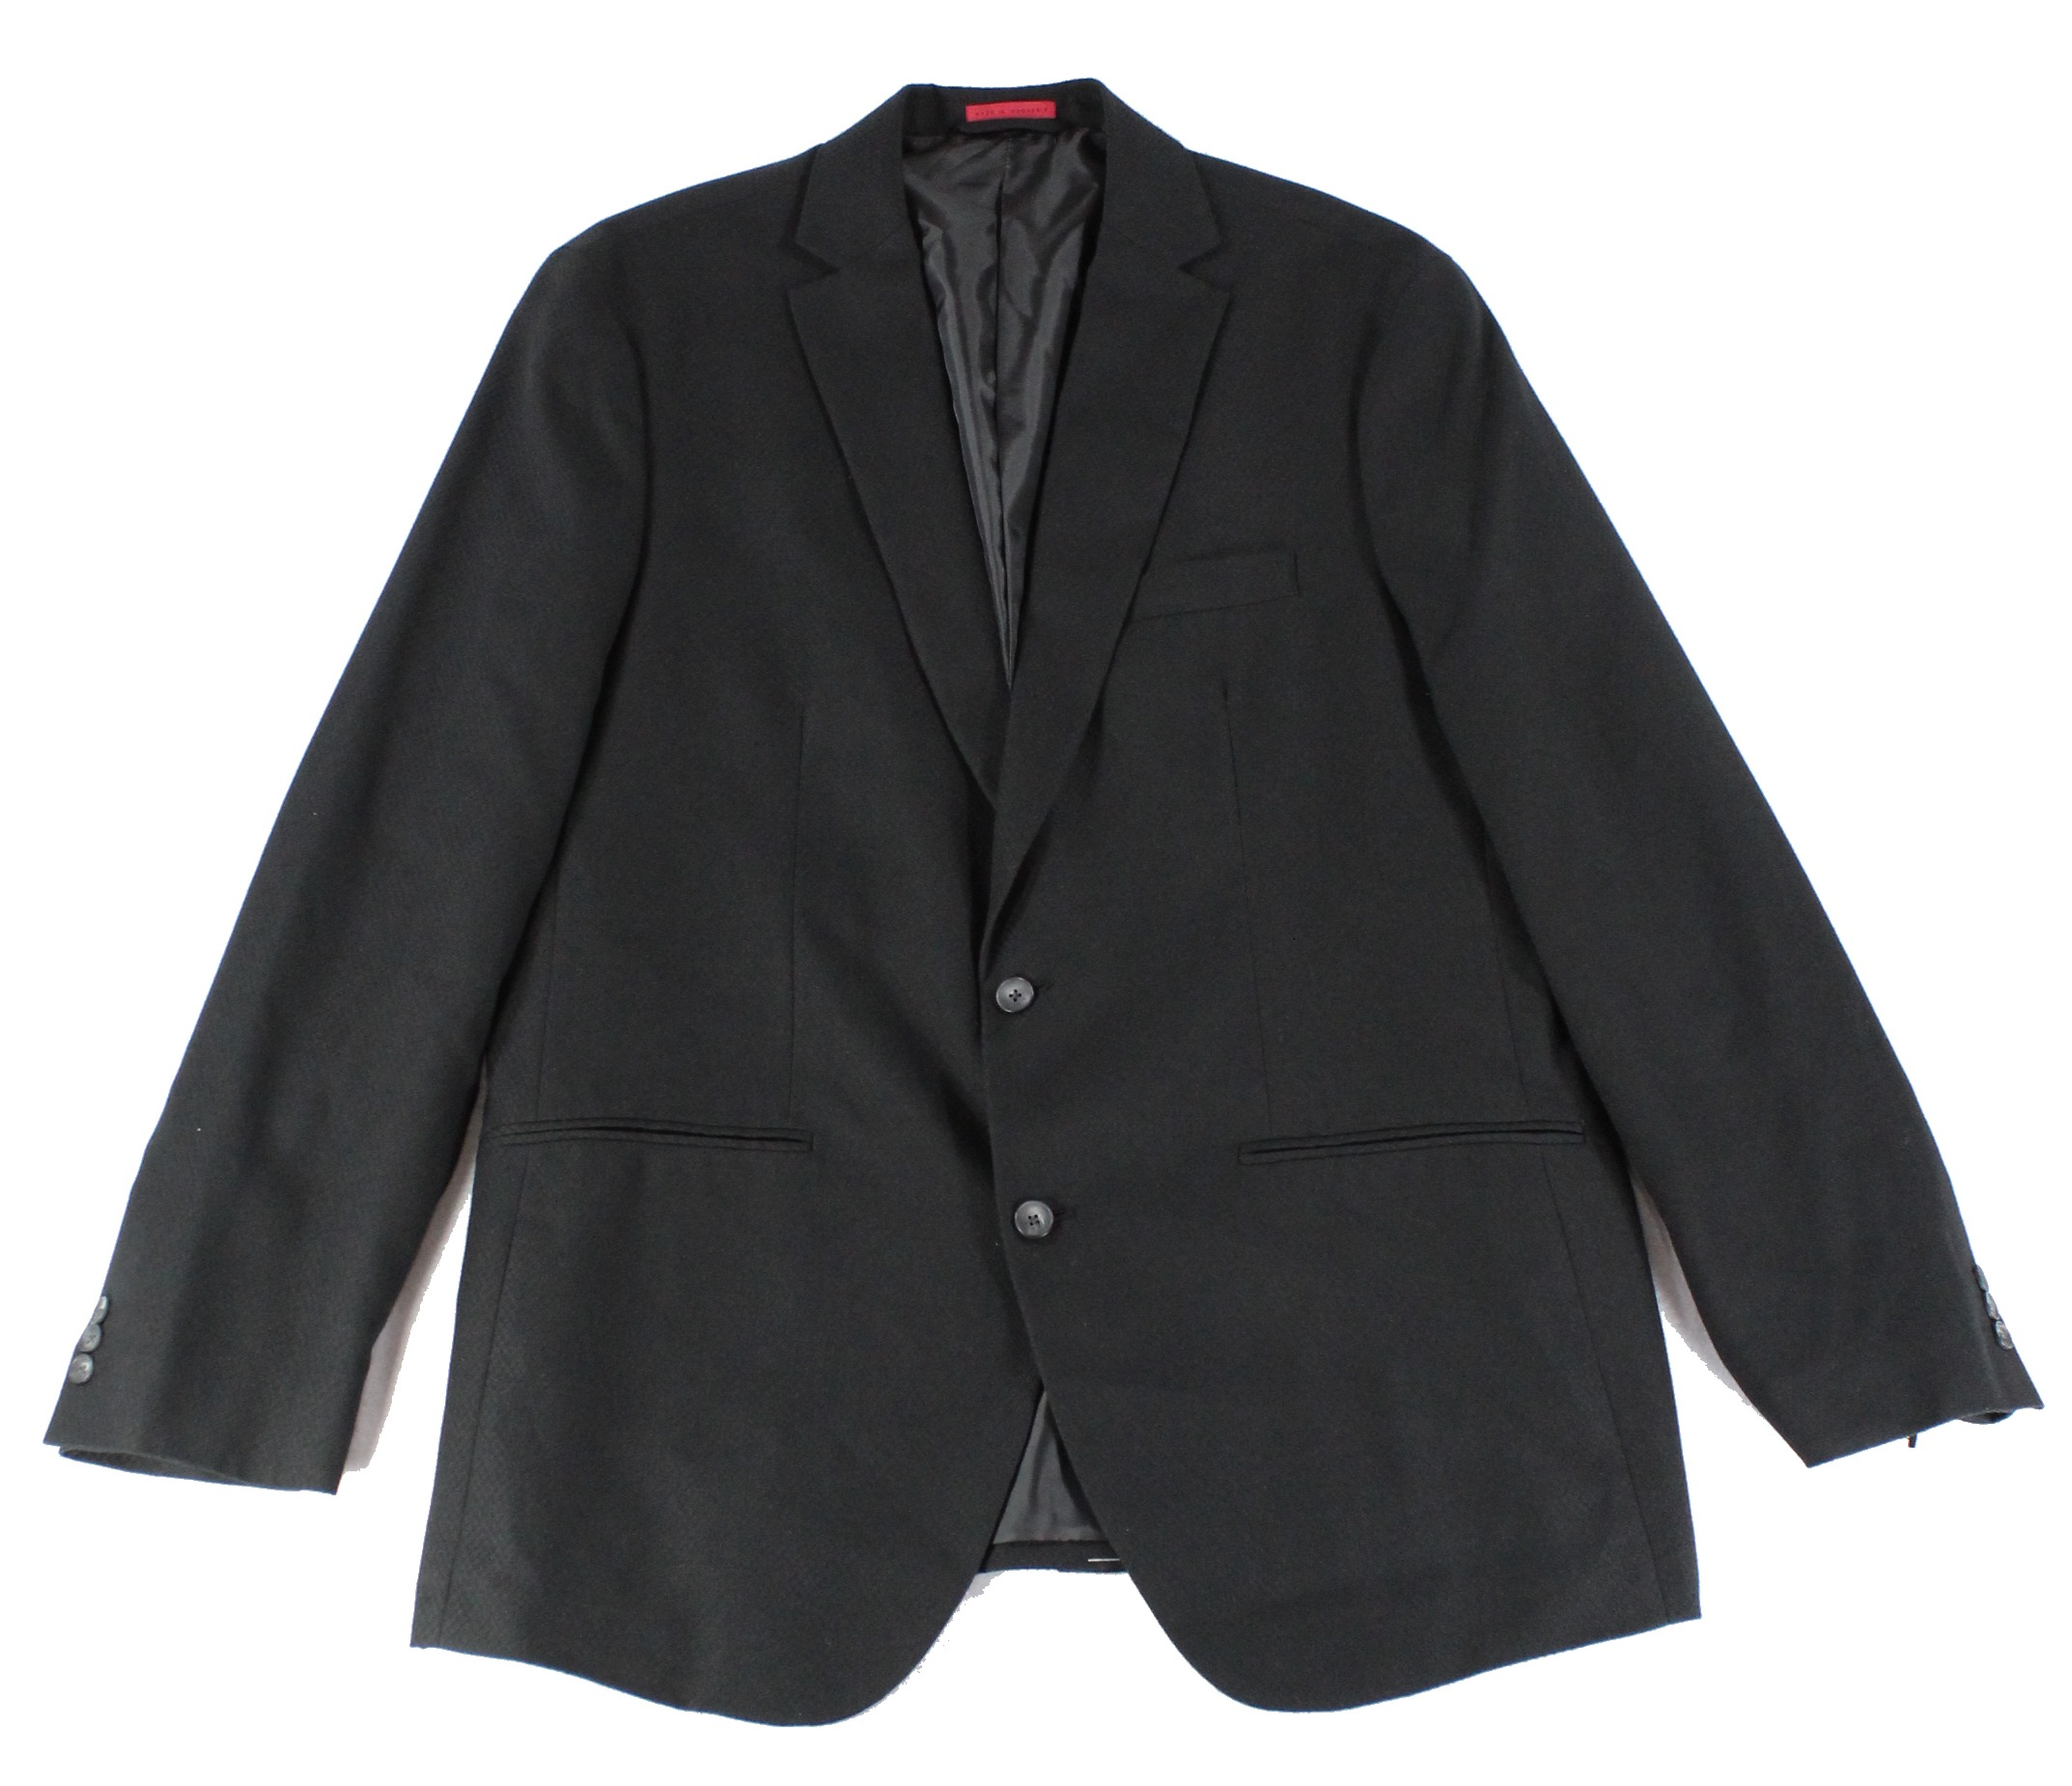 alfani new black mens size 3xb big \u0026 tall slim fit textured geo coat Going to a Store in German l dennis on 12 20 2017 10 21 c 15 10 q 1 w 1 58 station flat image database u 706256232423 style 14405bt rep schart yes minutes 1 am create